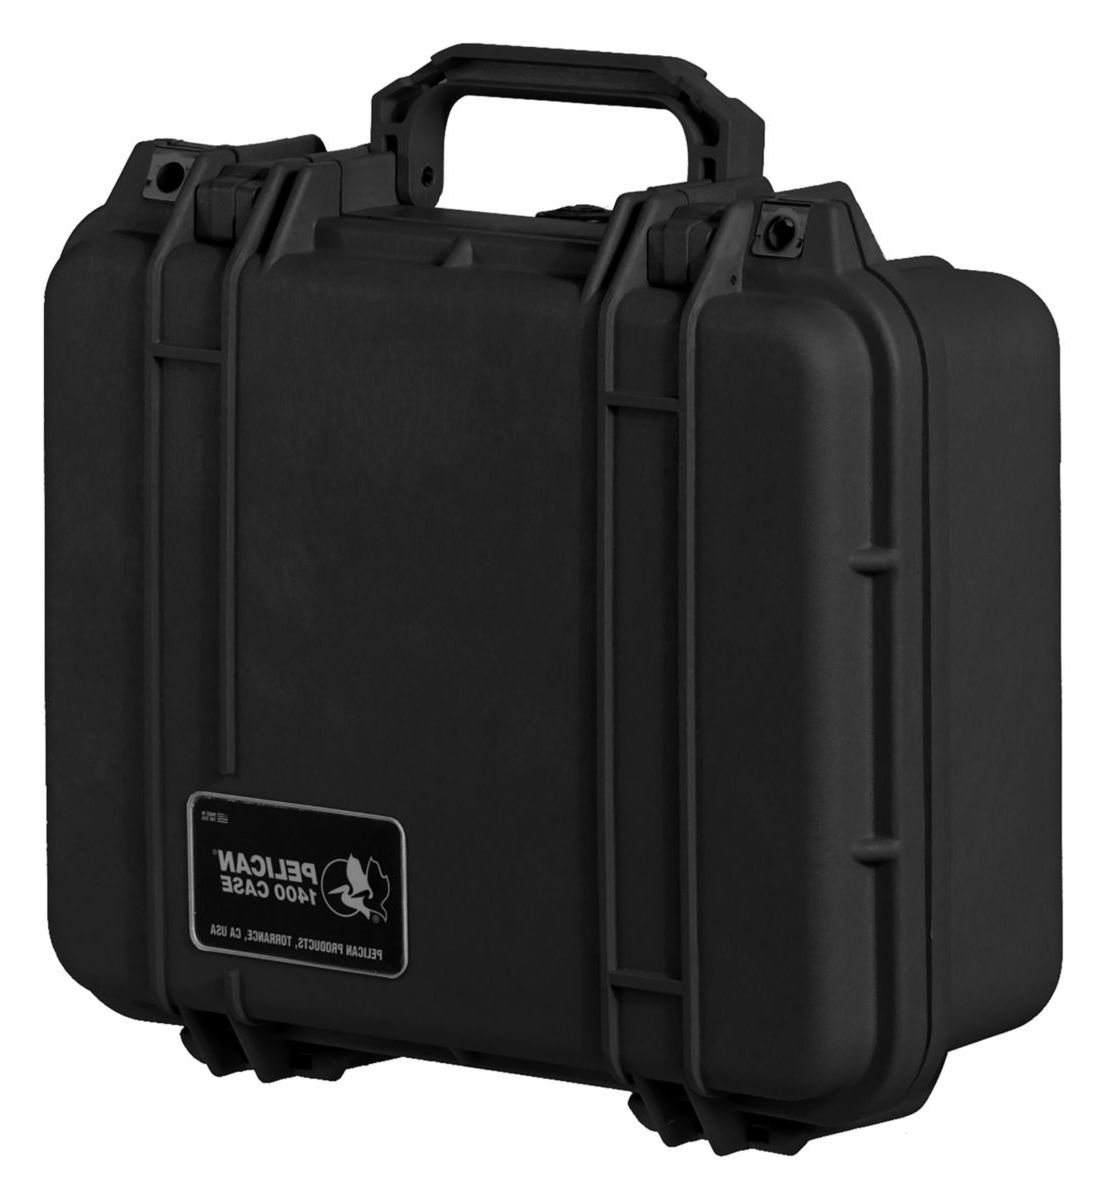 Pelican® Protector™ Watertight Equipment Cases